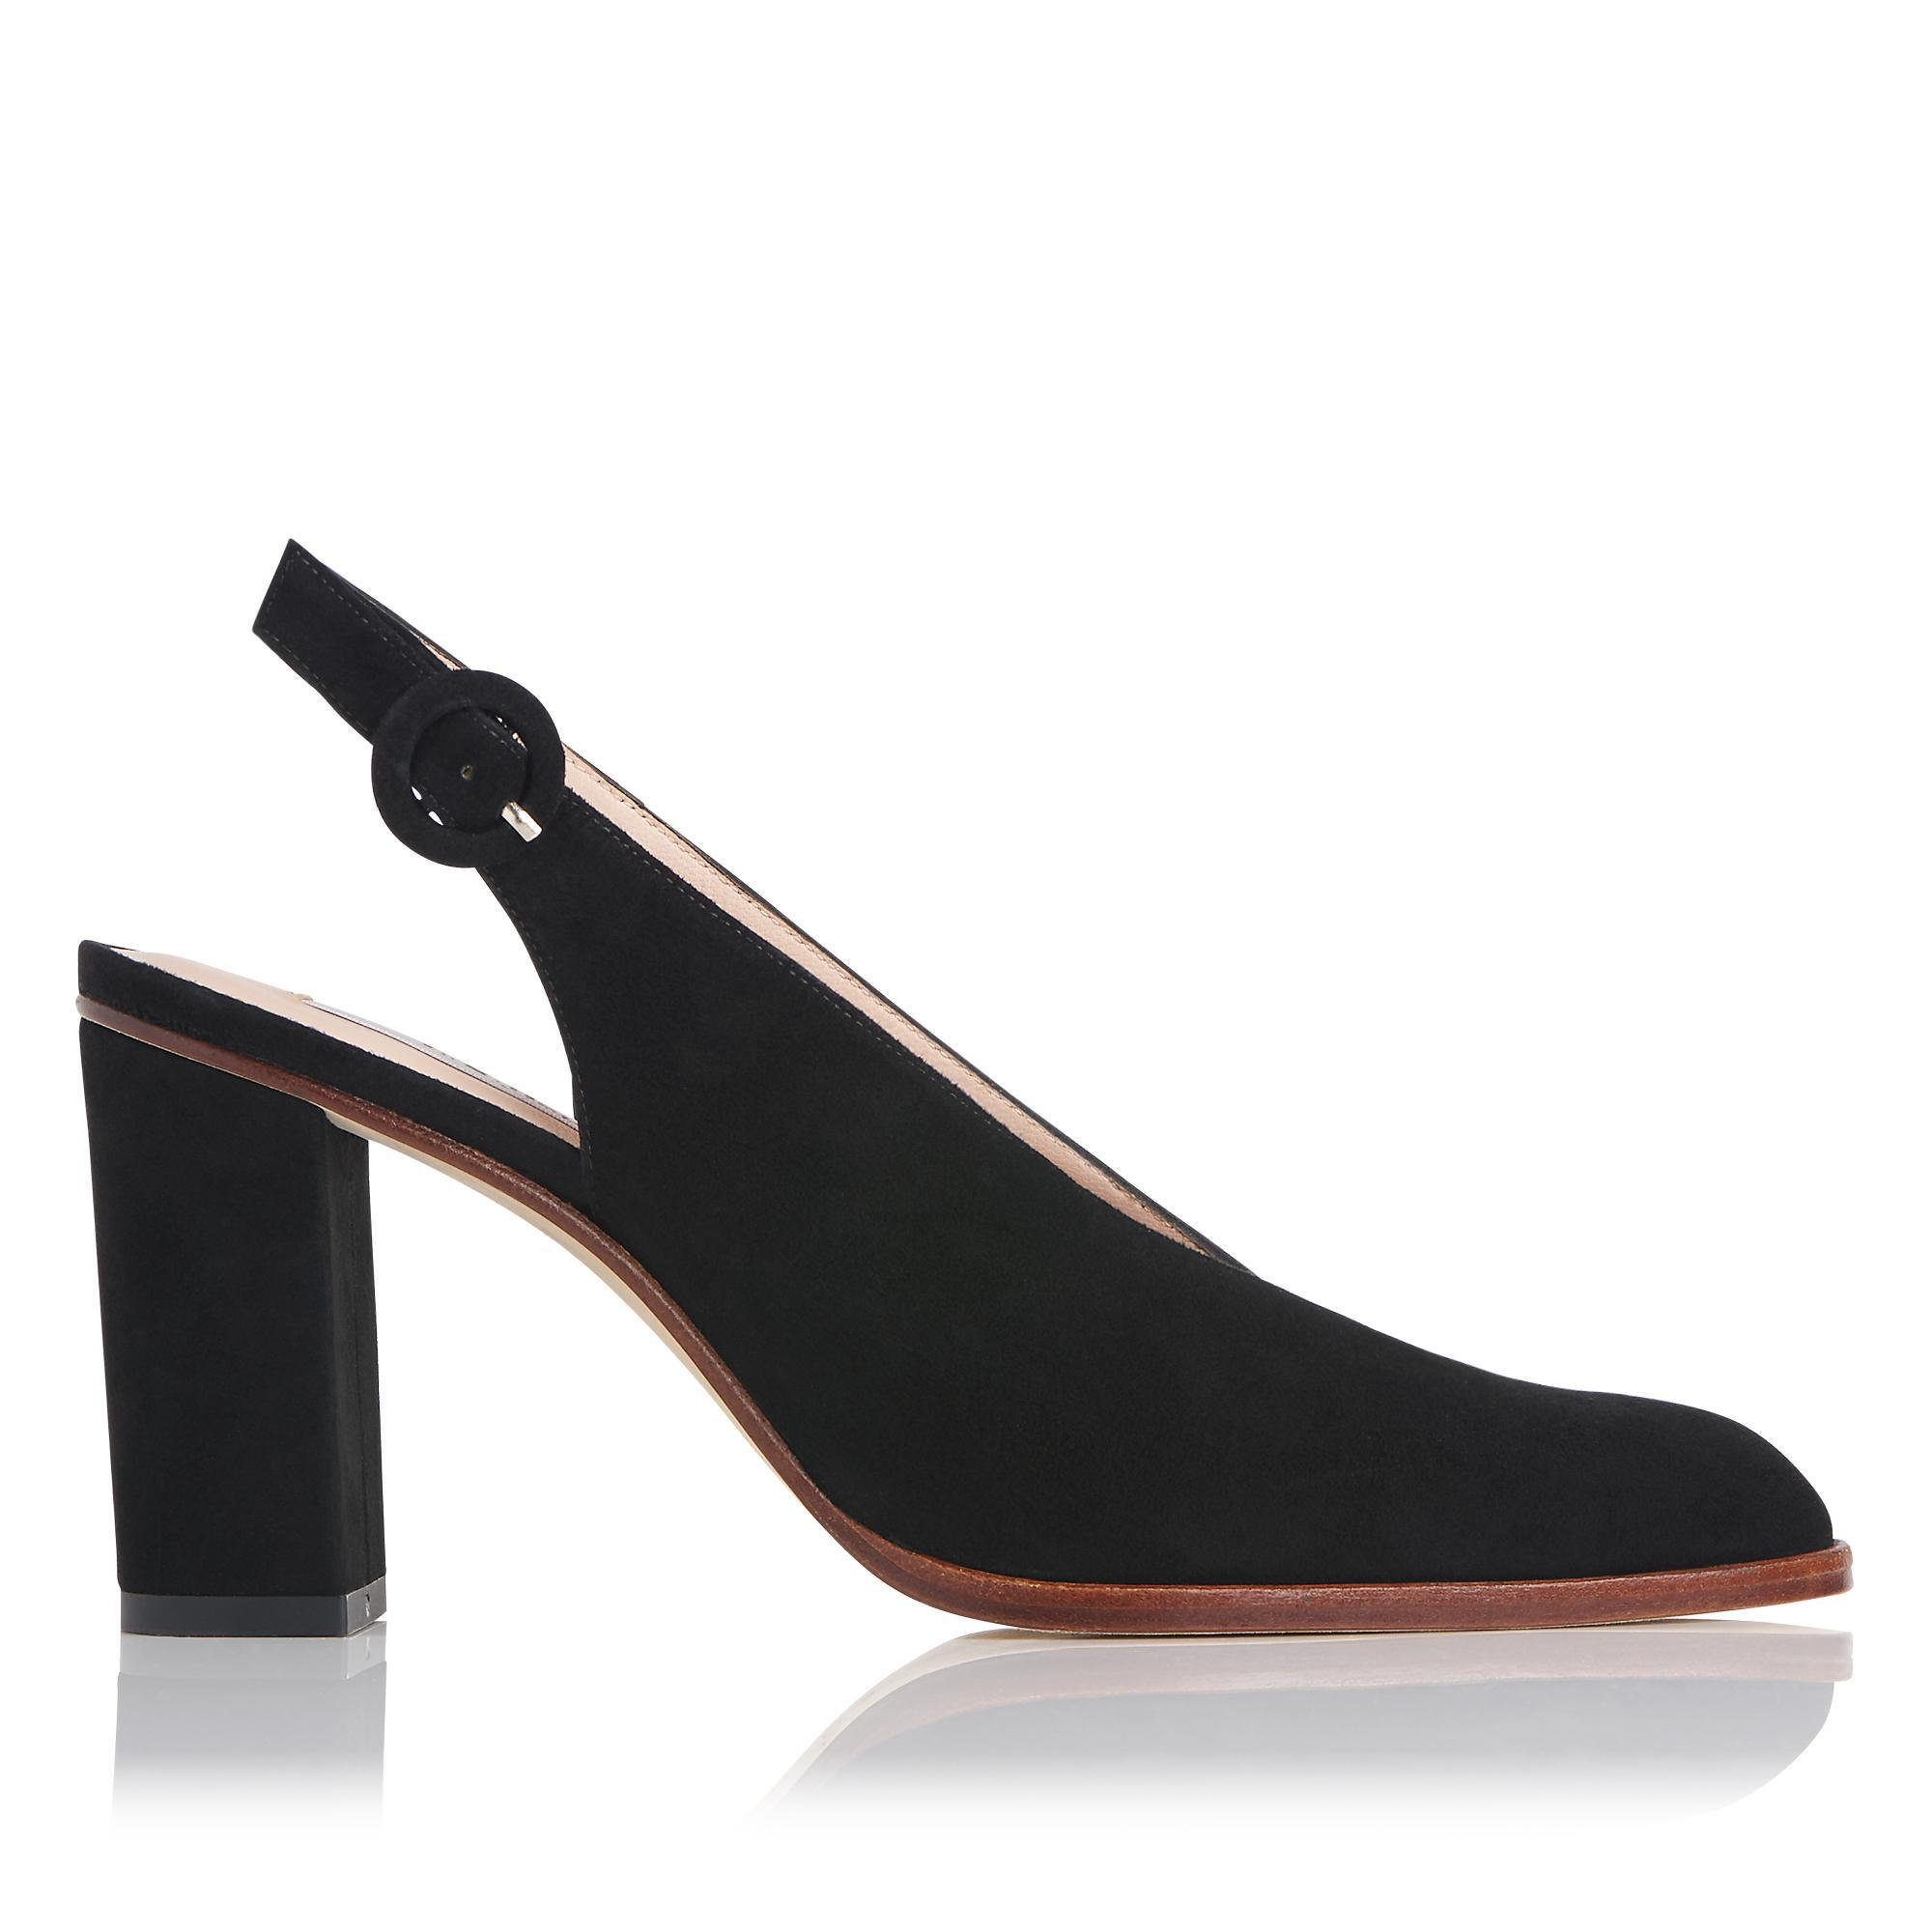 1. STATE Haylee Ankle Strap D'Orsay Heel (Women's)